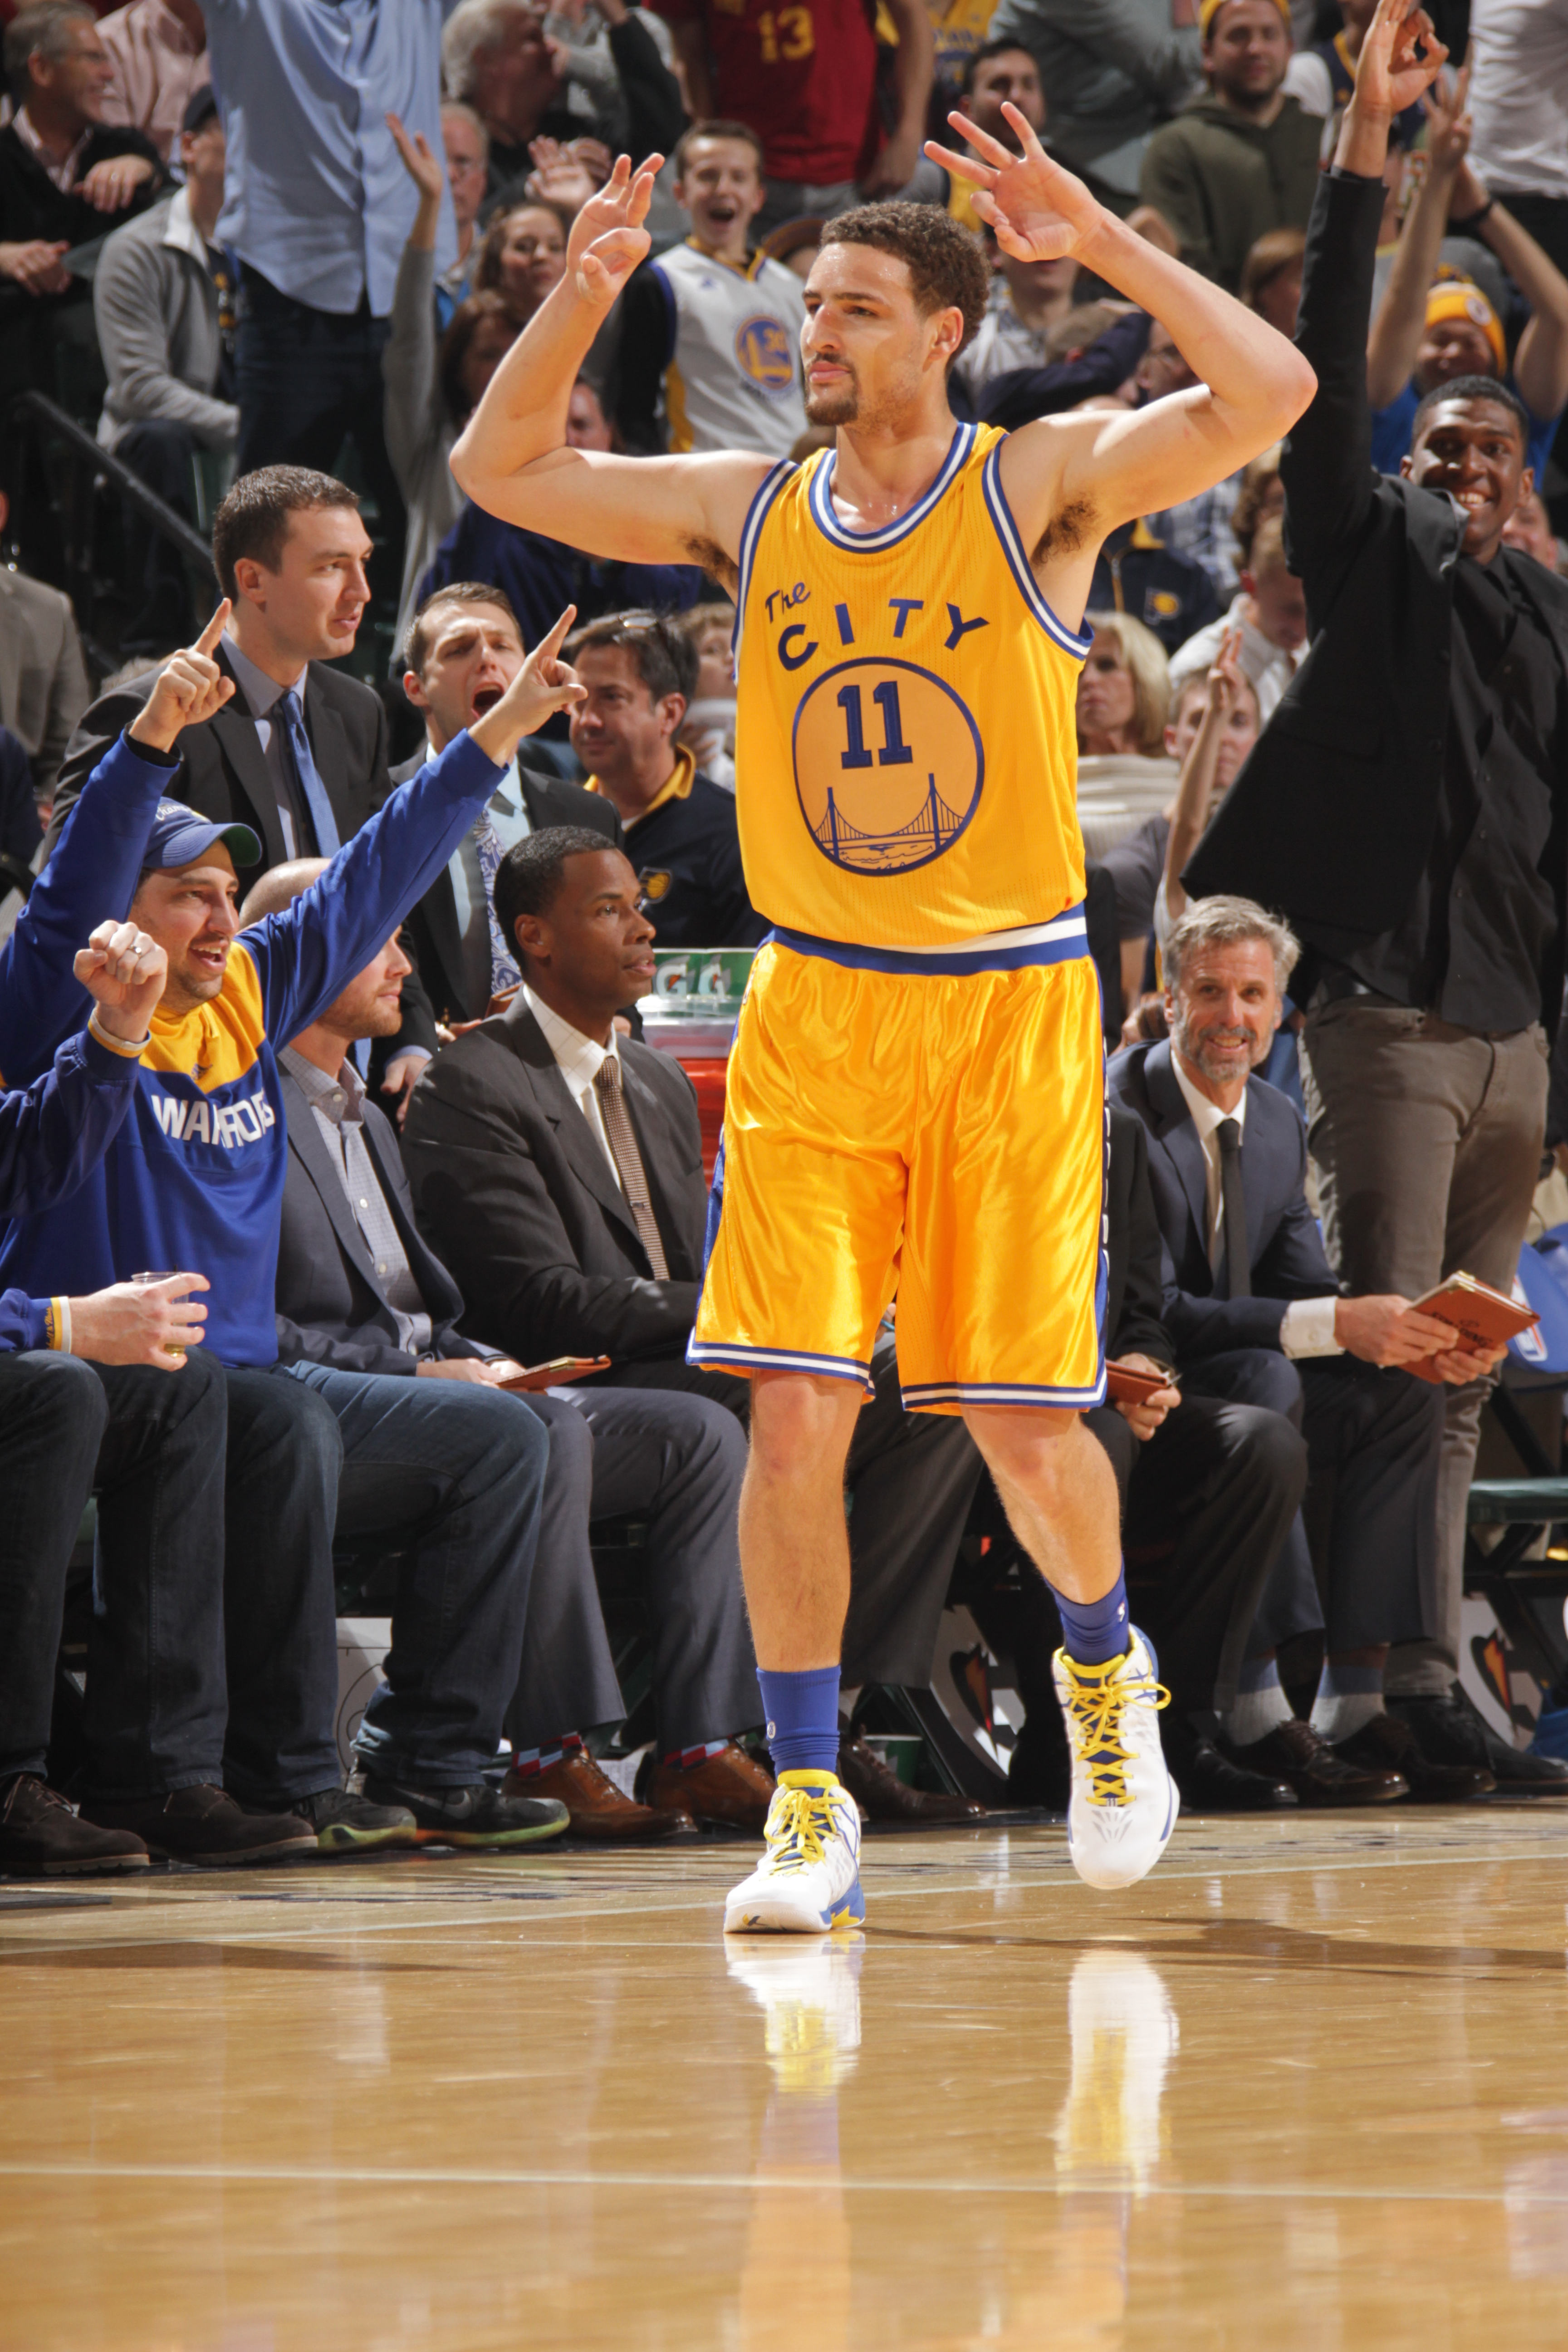 INDIANAPOLIS, IN - DECEMBER 8:  Klay Thompson #11 of the Golden State Warriors celebrates during the game against the Indiana Pacers on December 8, 2015 at Bankers Life Fieldhouse in Indianapolis, Indiana. (Photo by Ron Hoskins/NBAE via Getty Images)